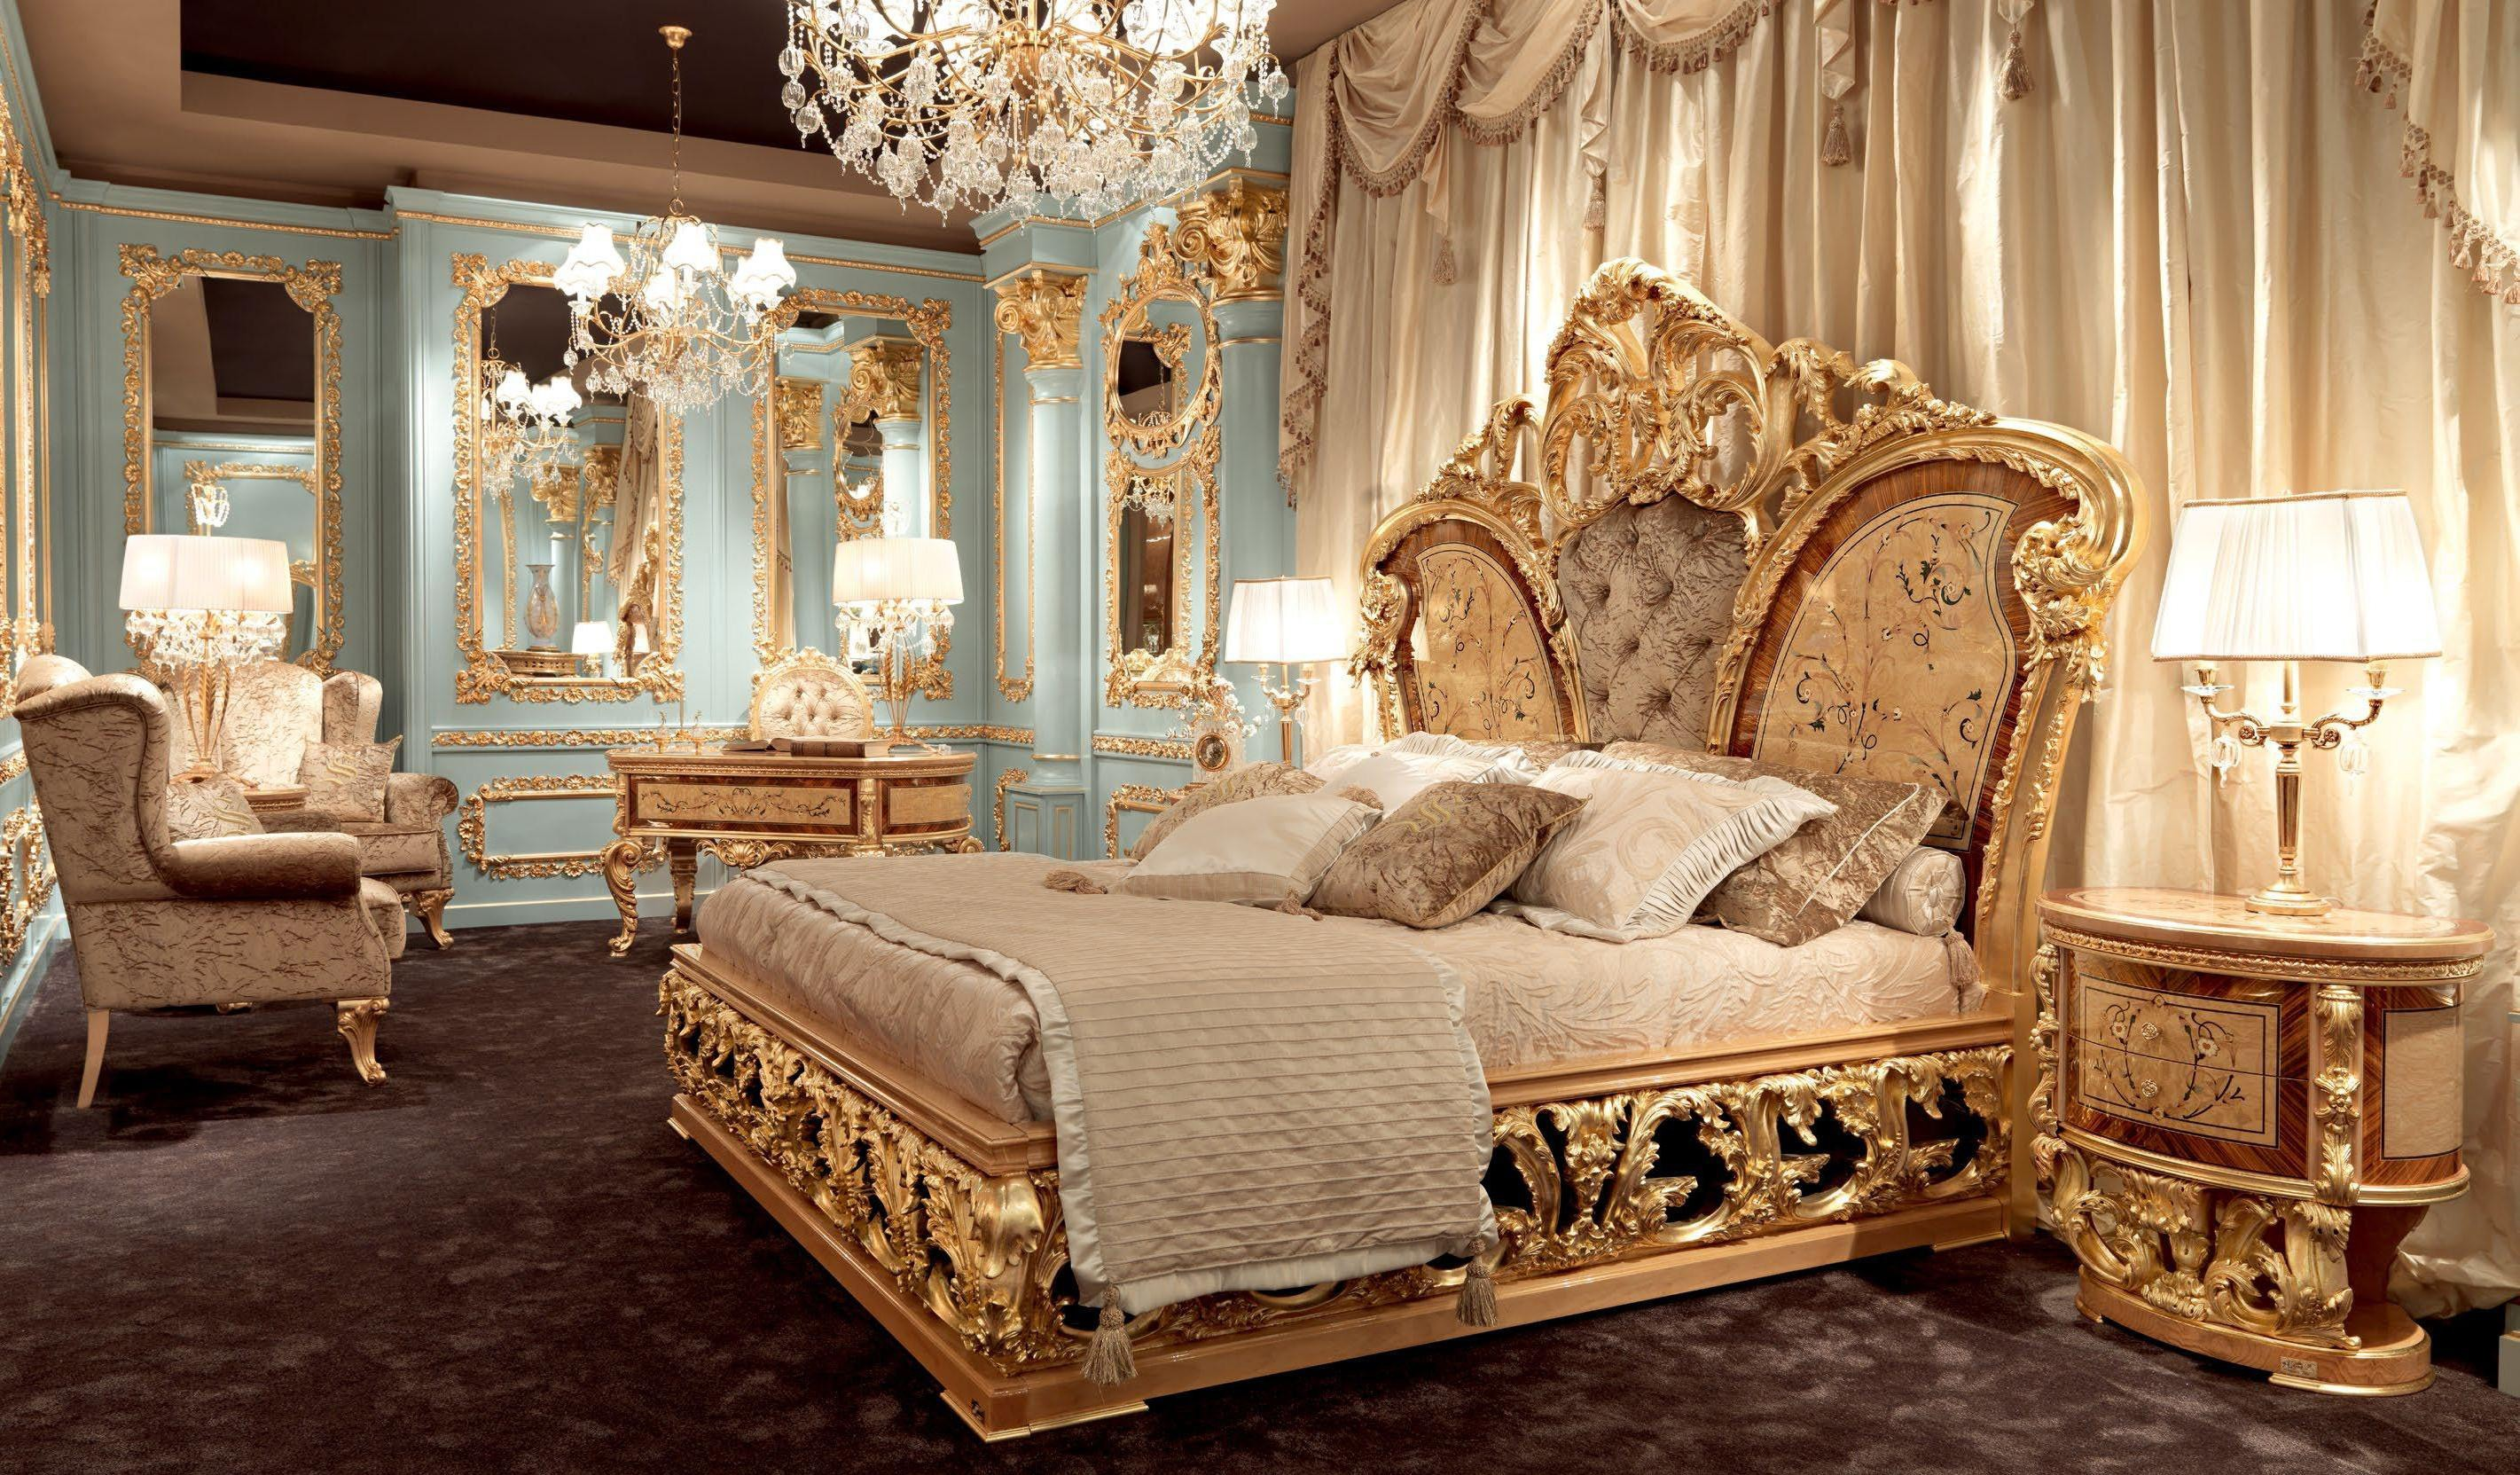 Merveilleux Queen And King Sized Beds Furniture Masterpiece Collection, Master Bed 4665